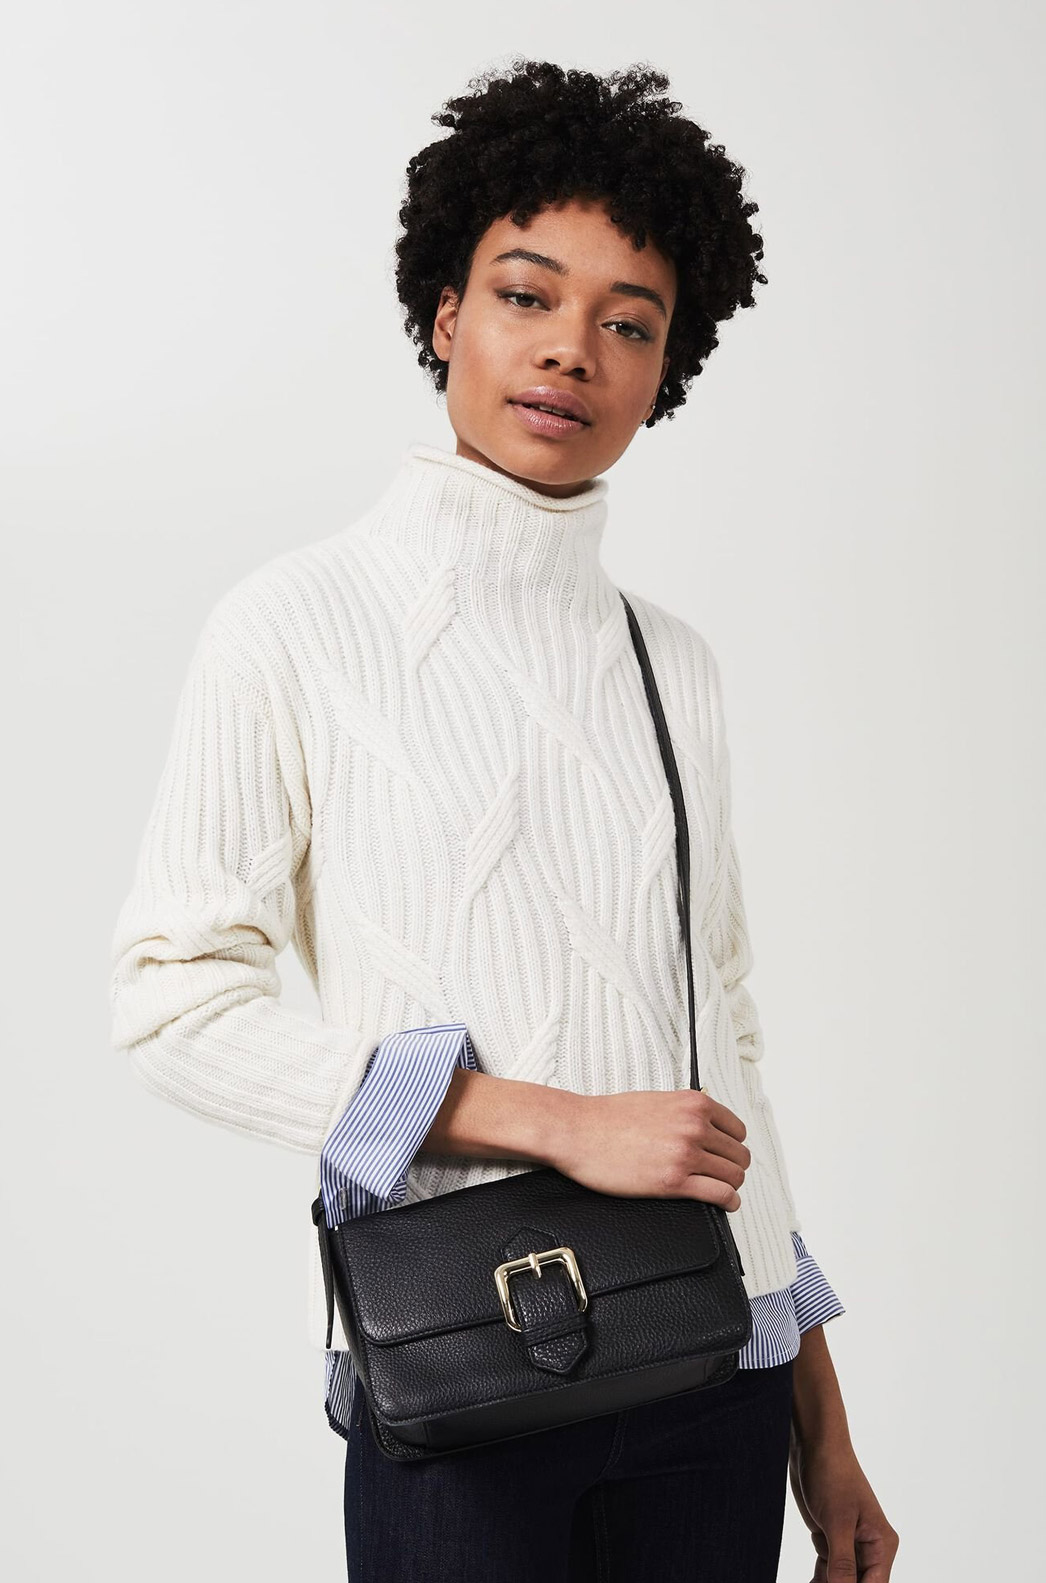 Model photographed wearing Hobbs black leather Selbourne crossbody bag.